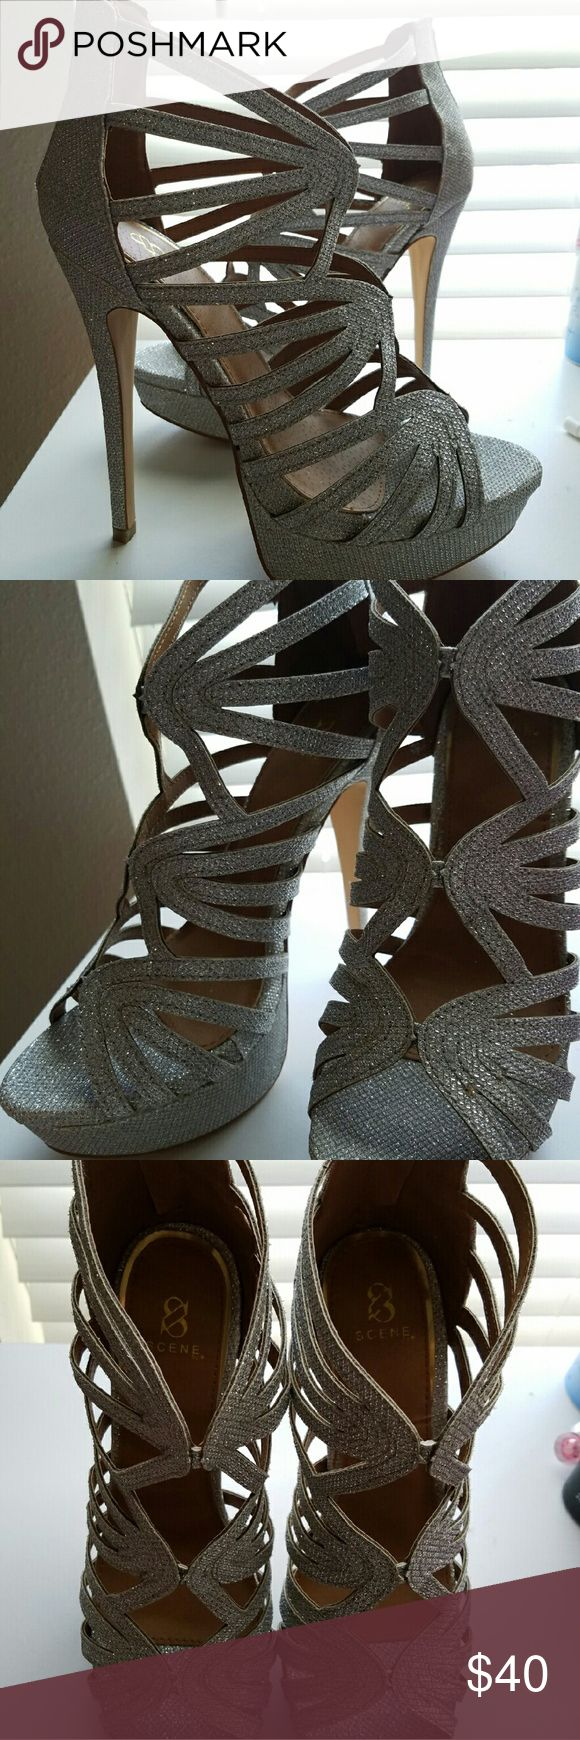 Luxurious Scene Silver Sparkly Heels * Size 8 1/2 - 9 * Comes with original box * Never worn..size didn't fit Shoe Dazzle Shoes Heels